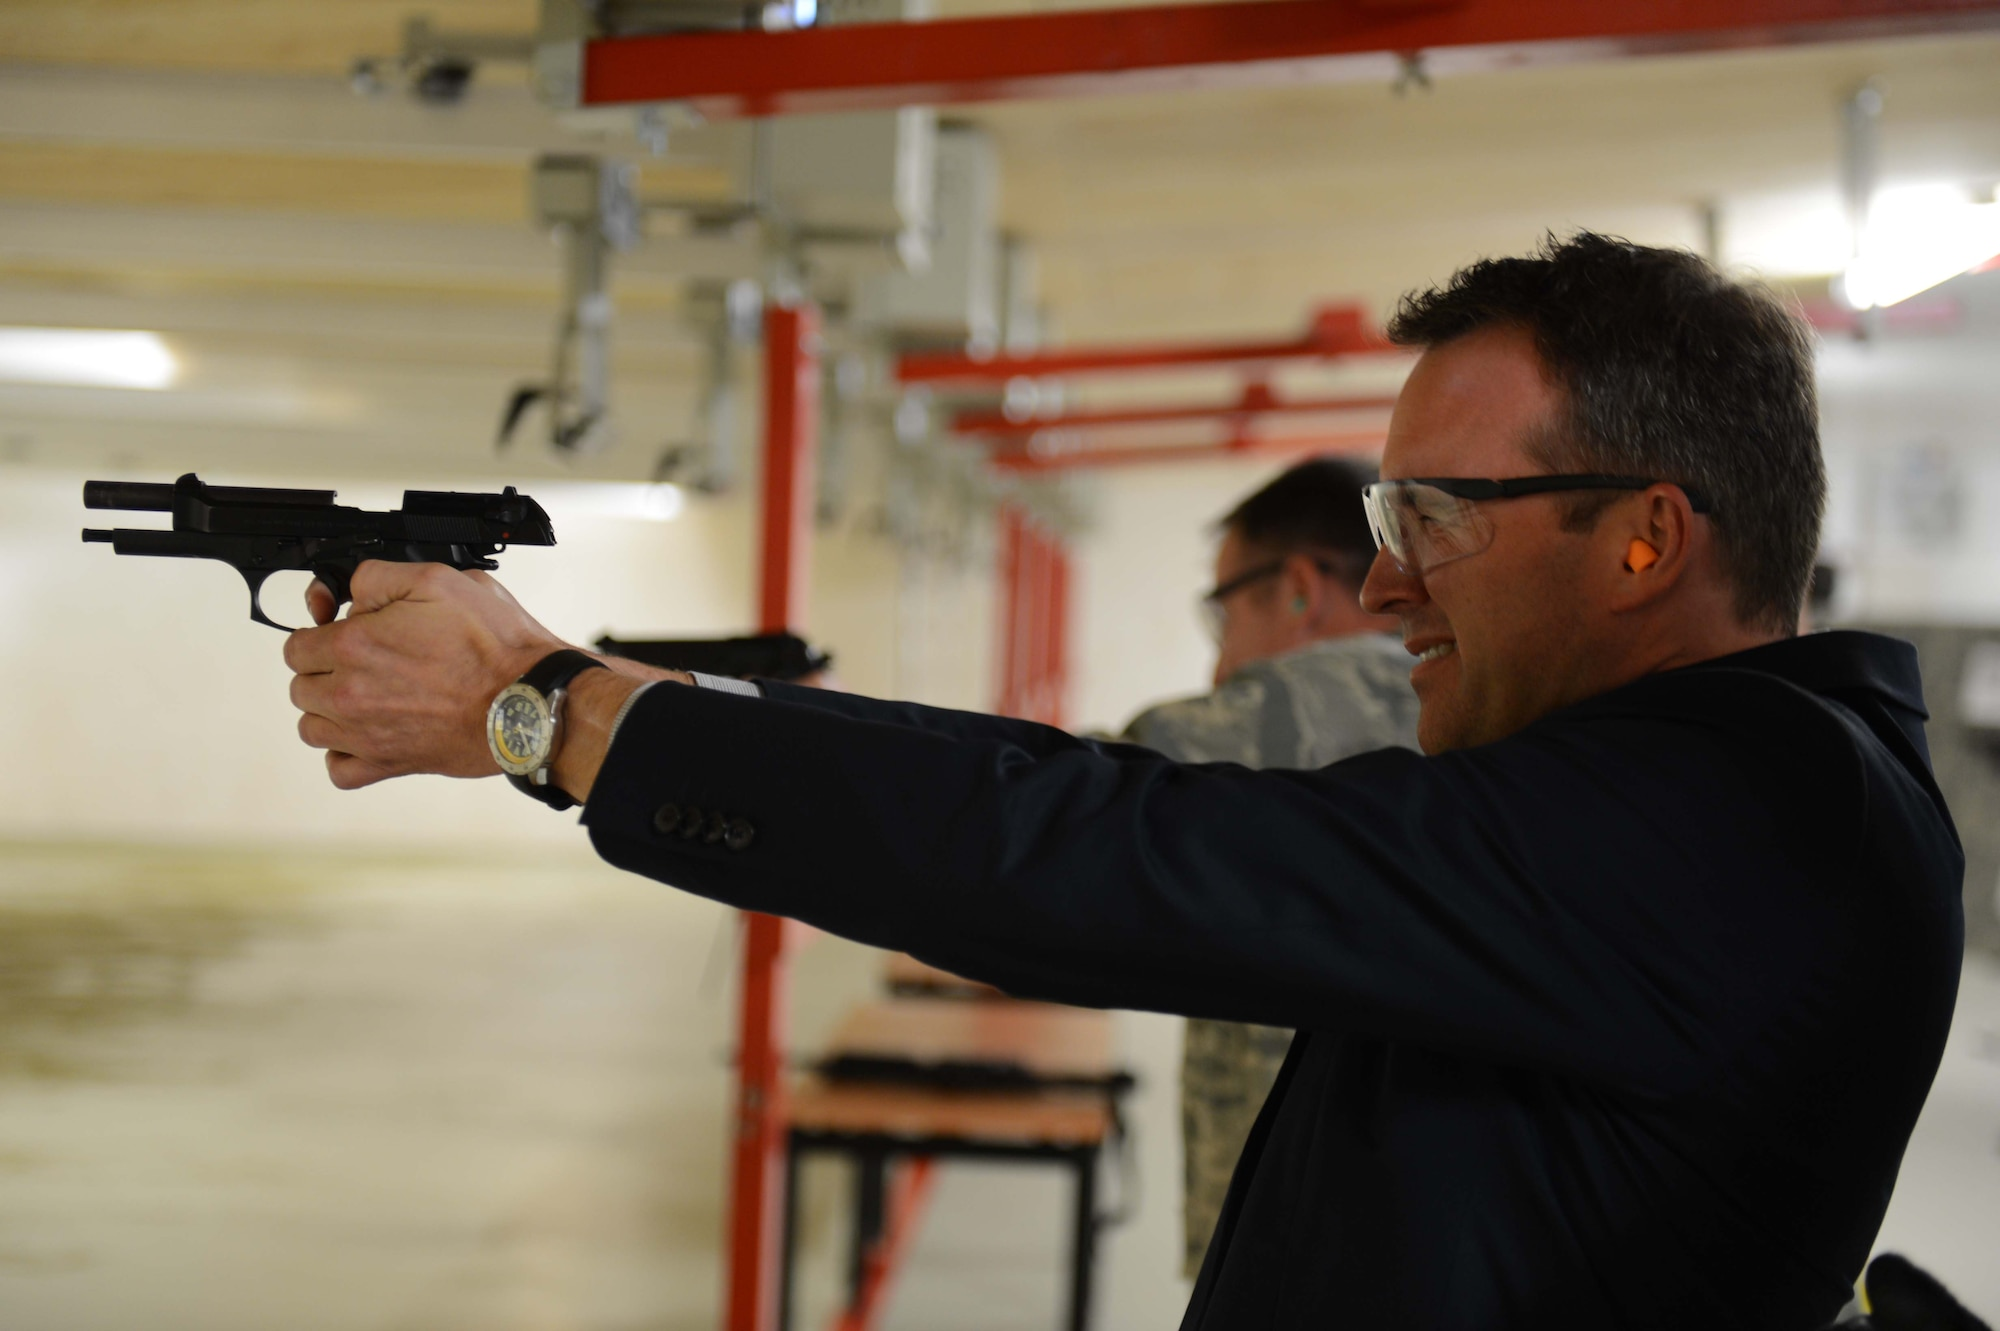 Under Secretary of the Air Force Eric Fanning fires a pistol at the combat arms training building during a base familiarization visit Aug. 5, 2014, on Spangdahlem Air Base, Germany. Fanning spoke with Airmen at locations across the base to hear how they directly contribute to operations and readiness. (U.S. Air Force photo/Senior Airman Gustavo Castillo)